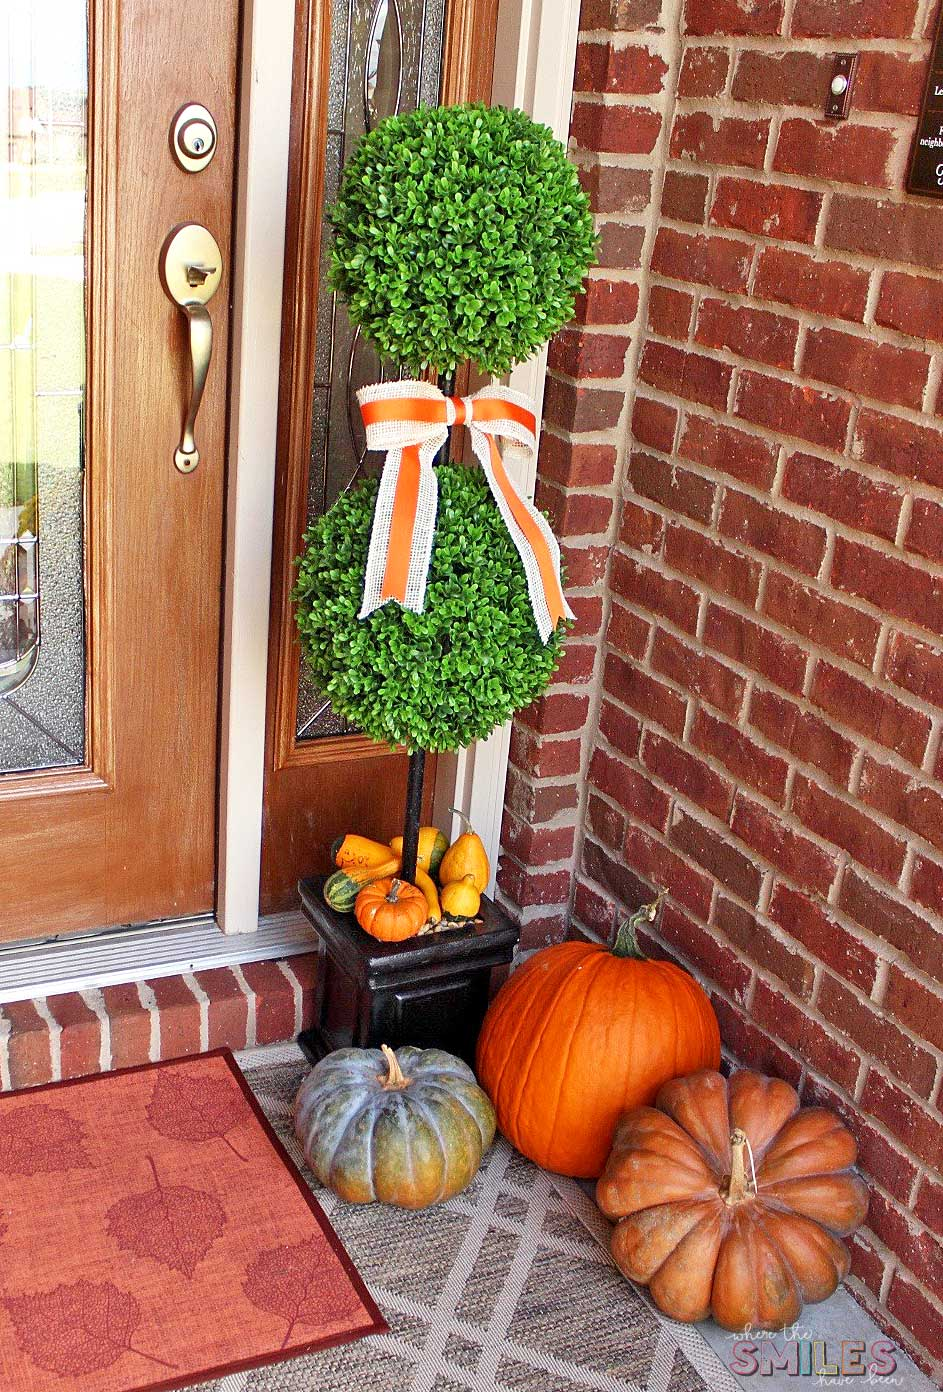 Fall Front Porch Decor: Our Happy Harvest at Home! | Where The Smiles Have Been #fall #porch #pumpkins